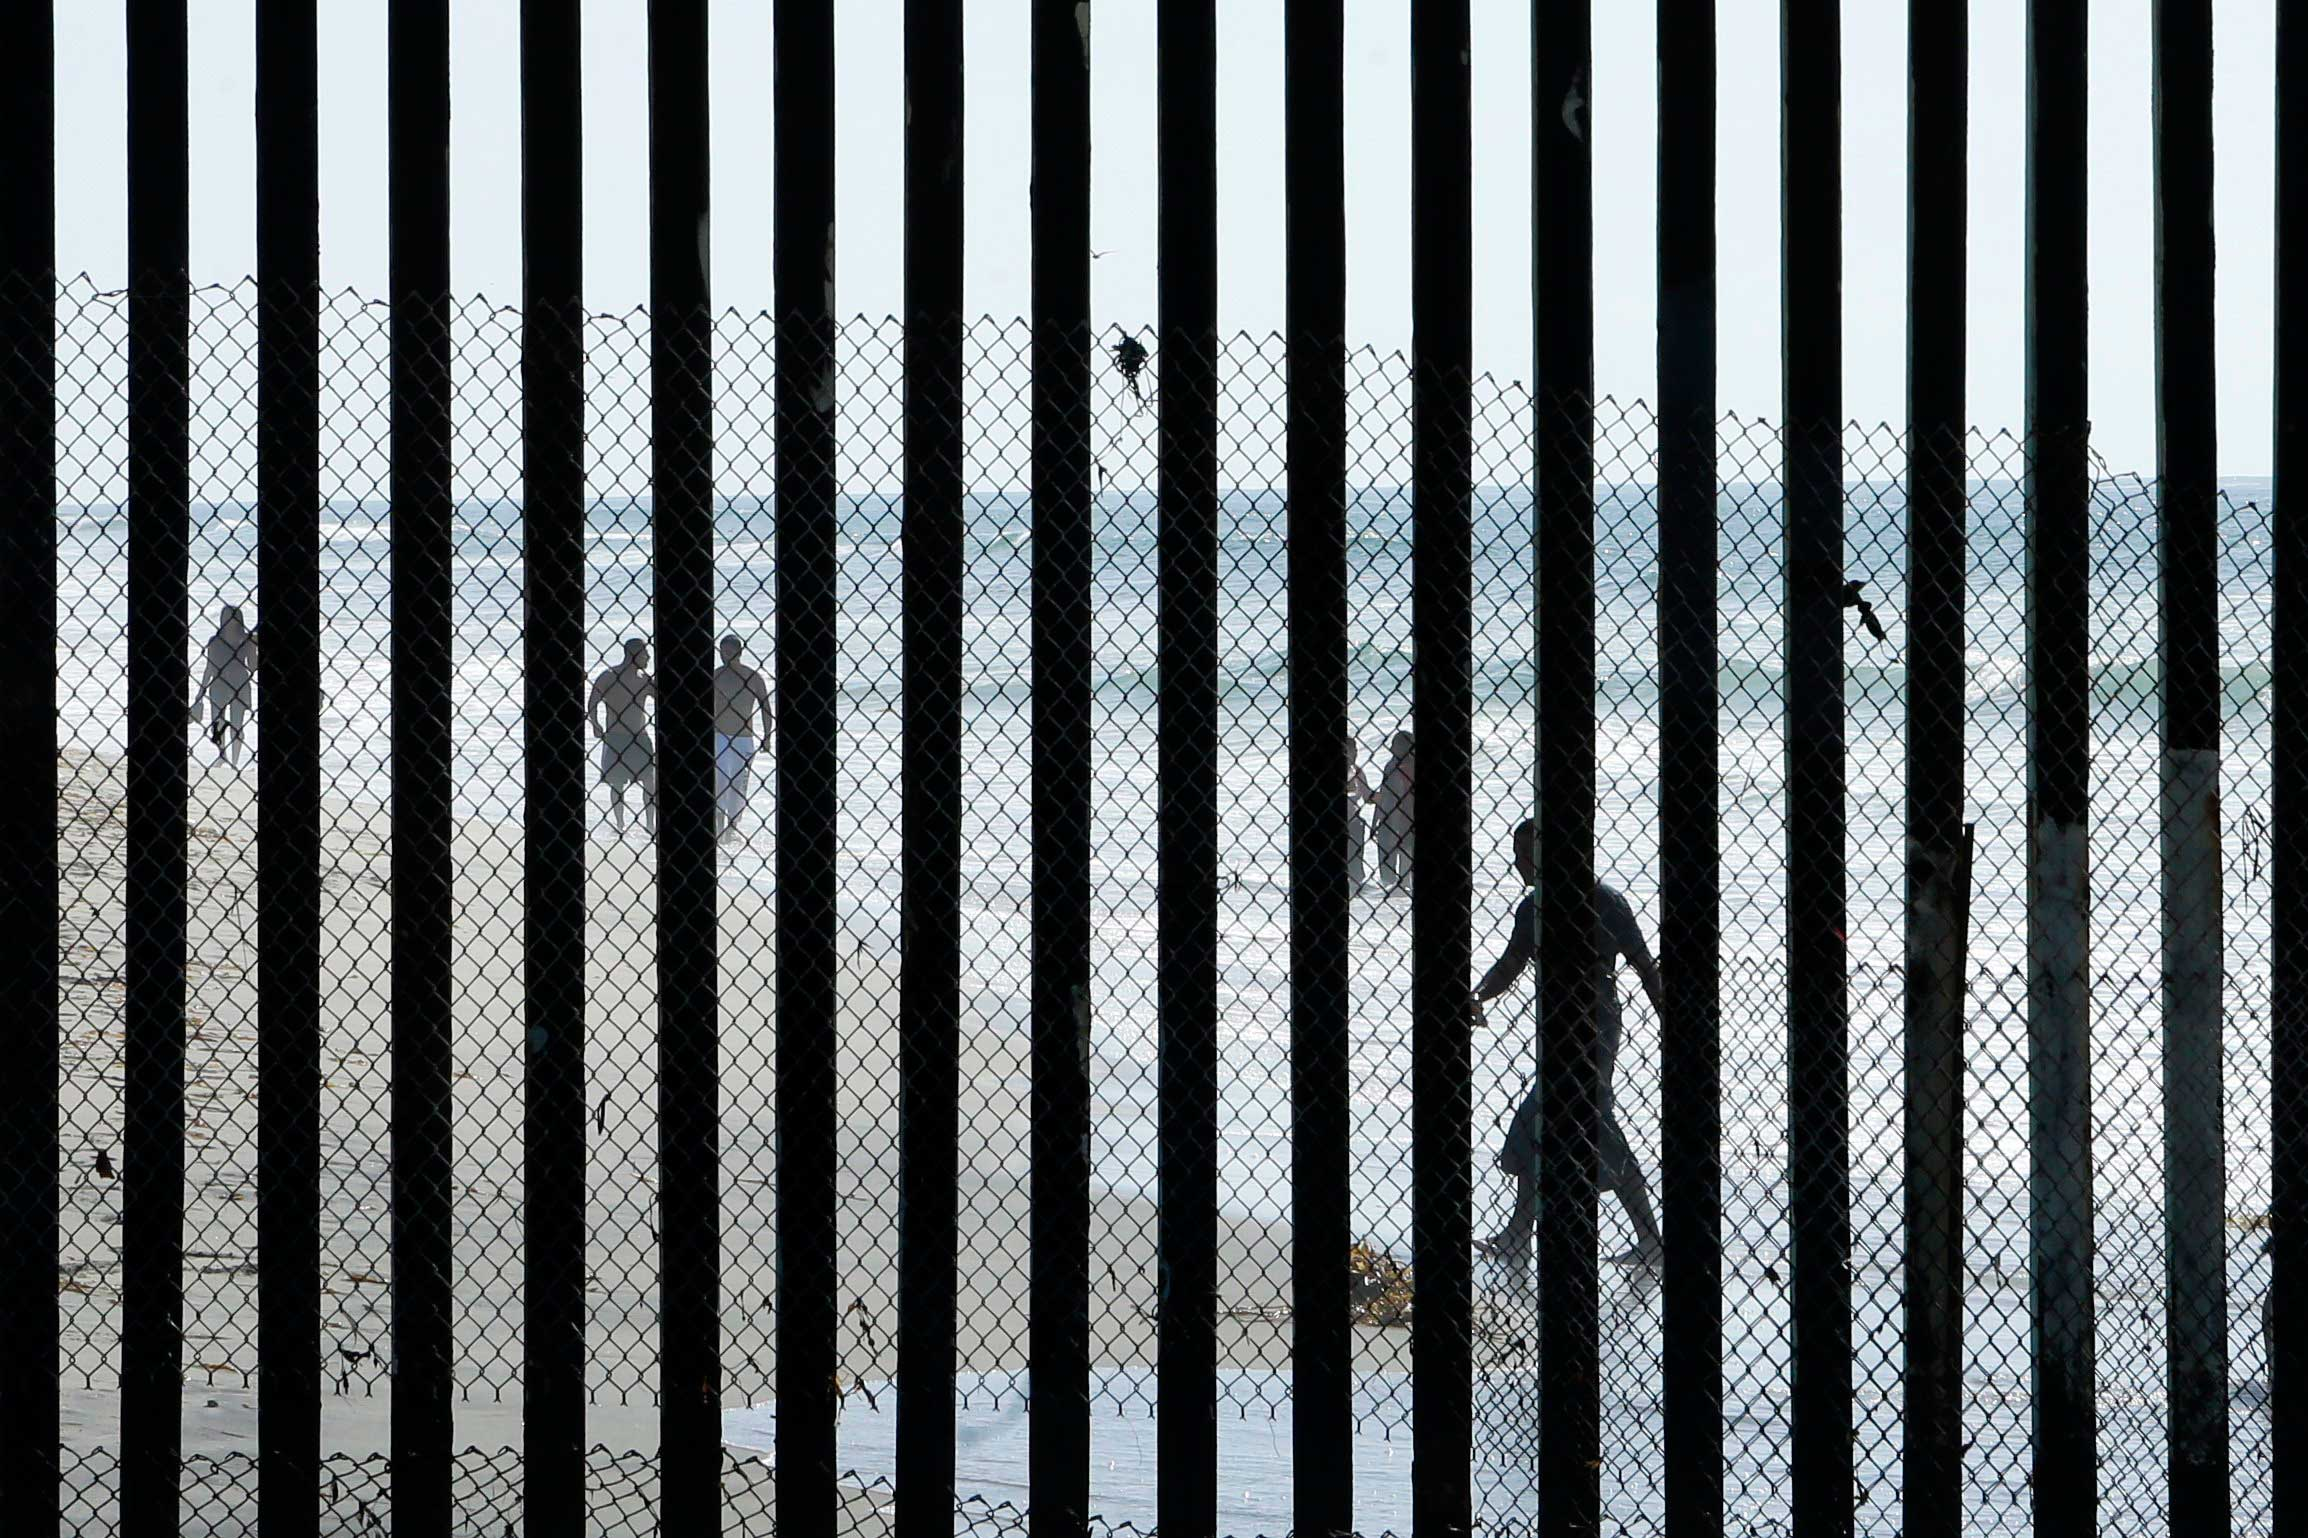 Oct. 29, 2014. People walk along the beach in Tijuana, Mexico, where metal bars marking the border with the U.S. meet the sea as seen from San Diego.